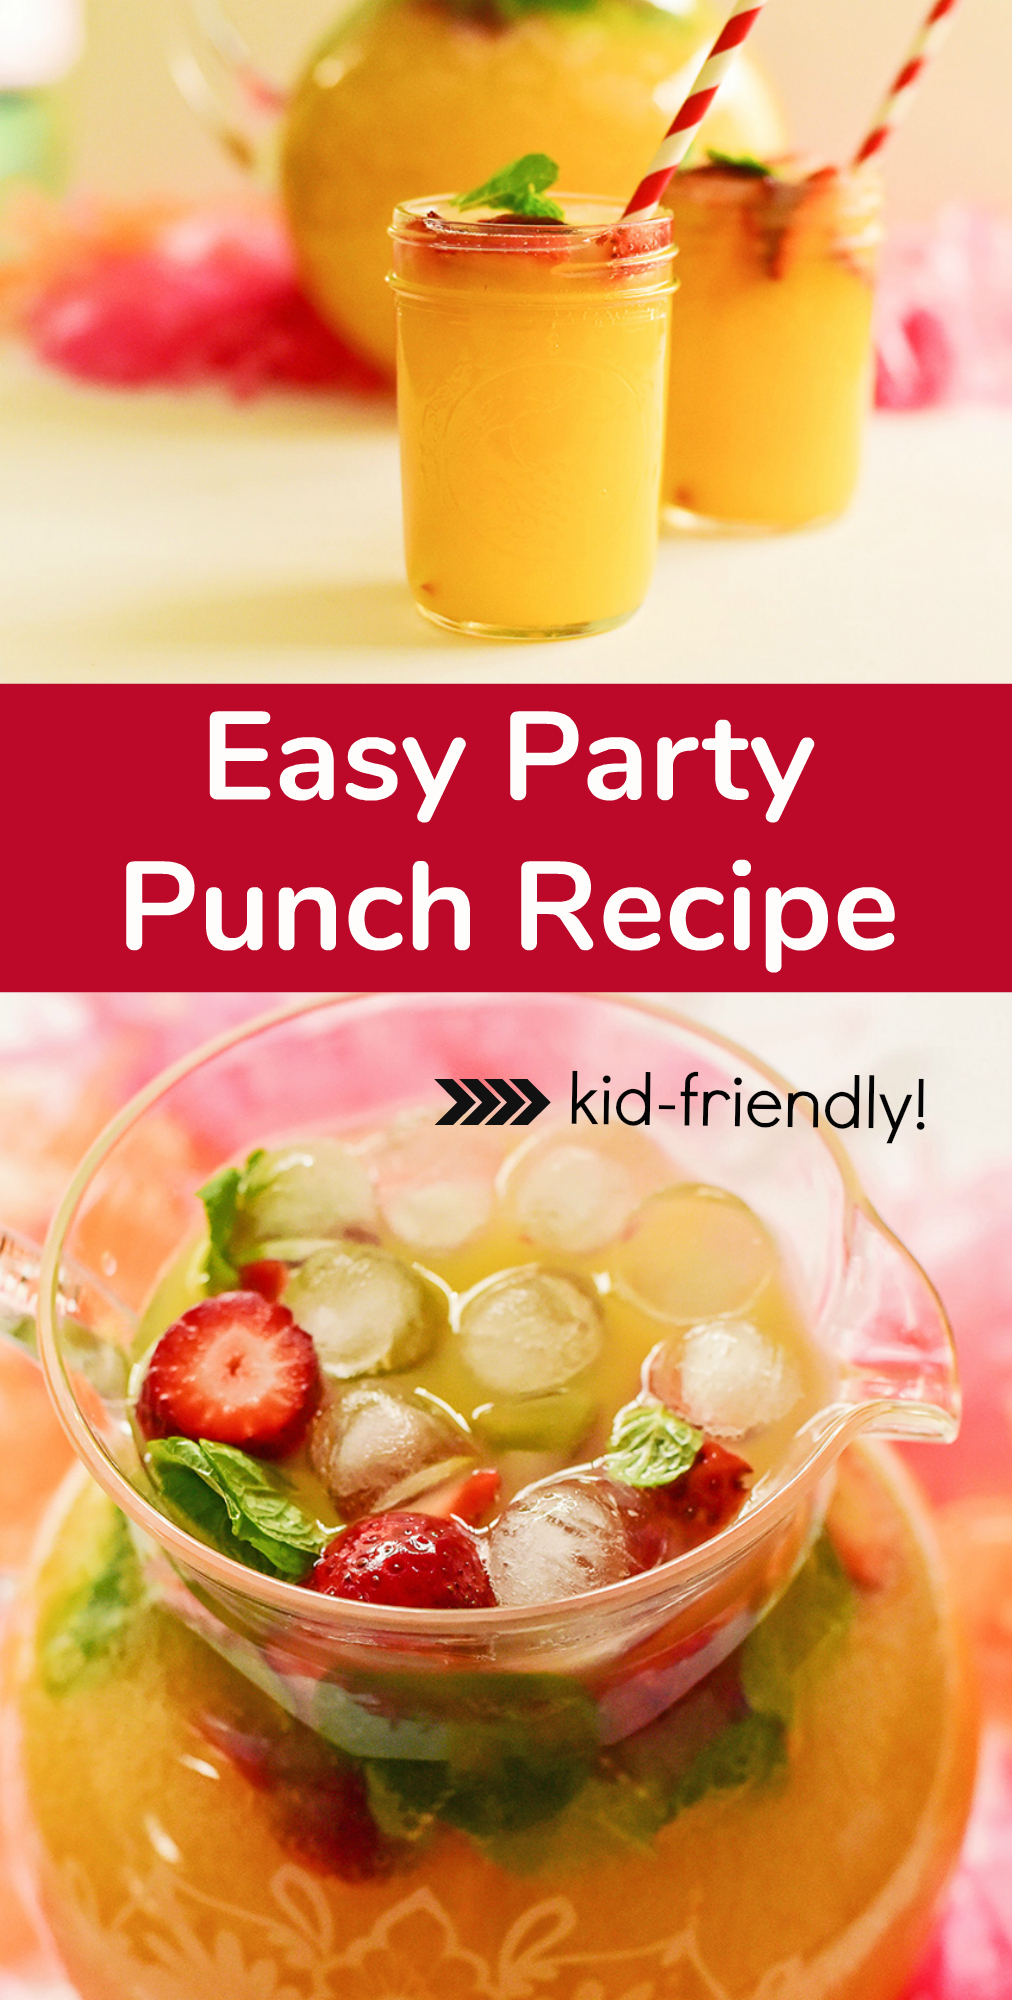 Easy Party Punch Recipe - Kid-Friendly!